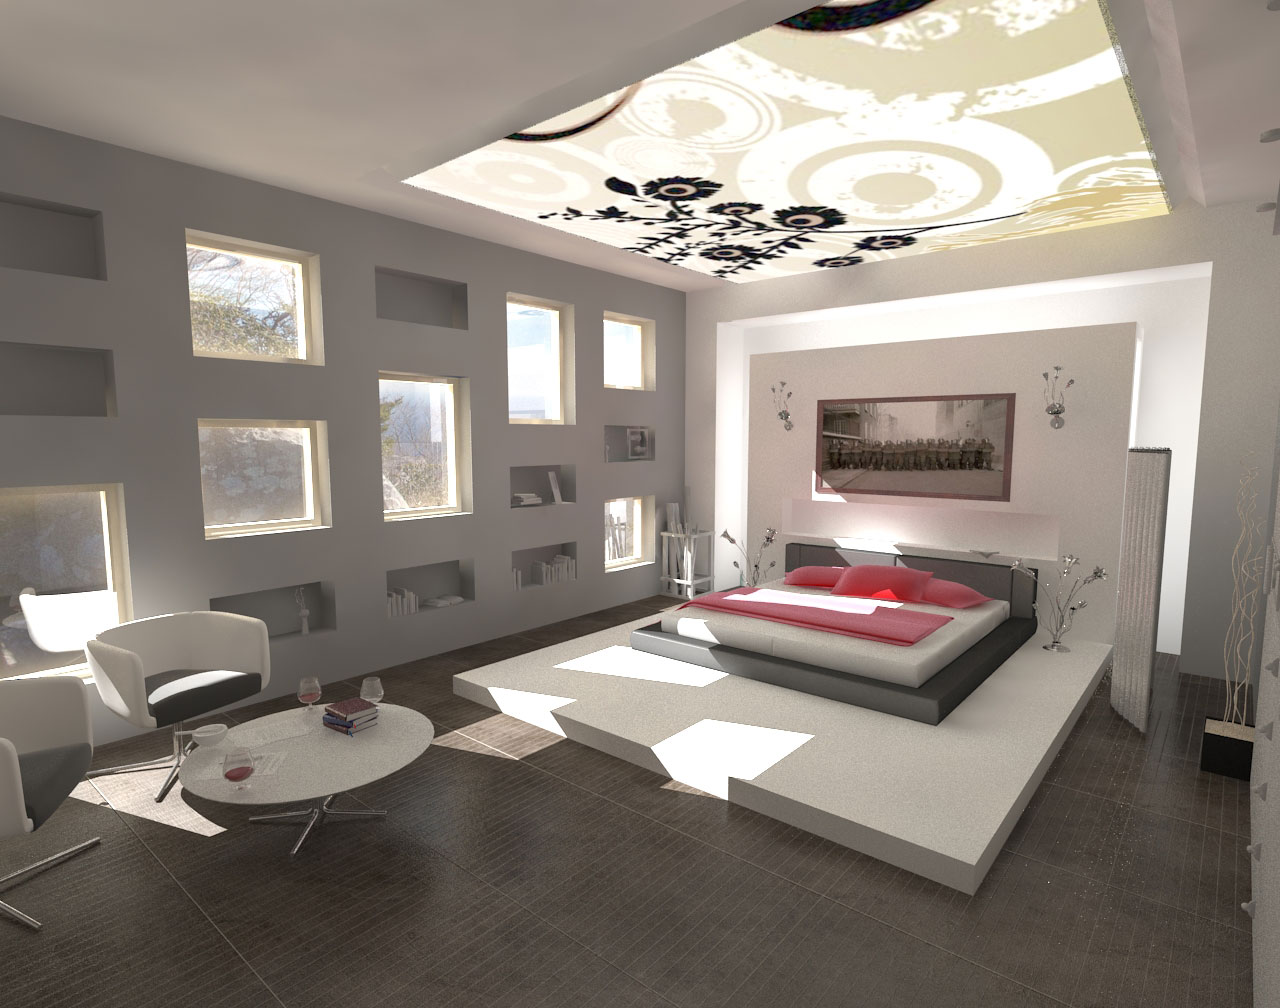 Decorations minimalist design modern bedroom interior - Modern small bedroom decoration ...